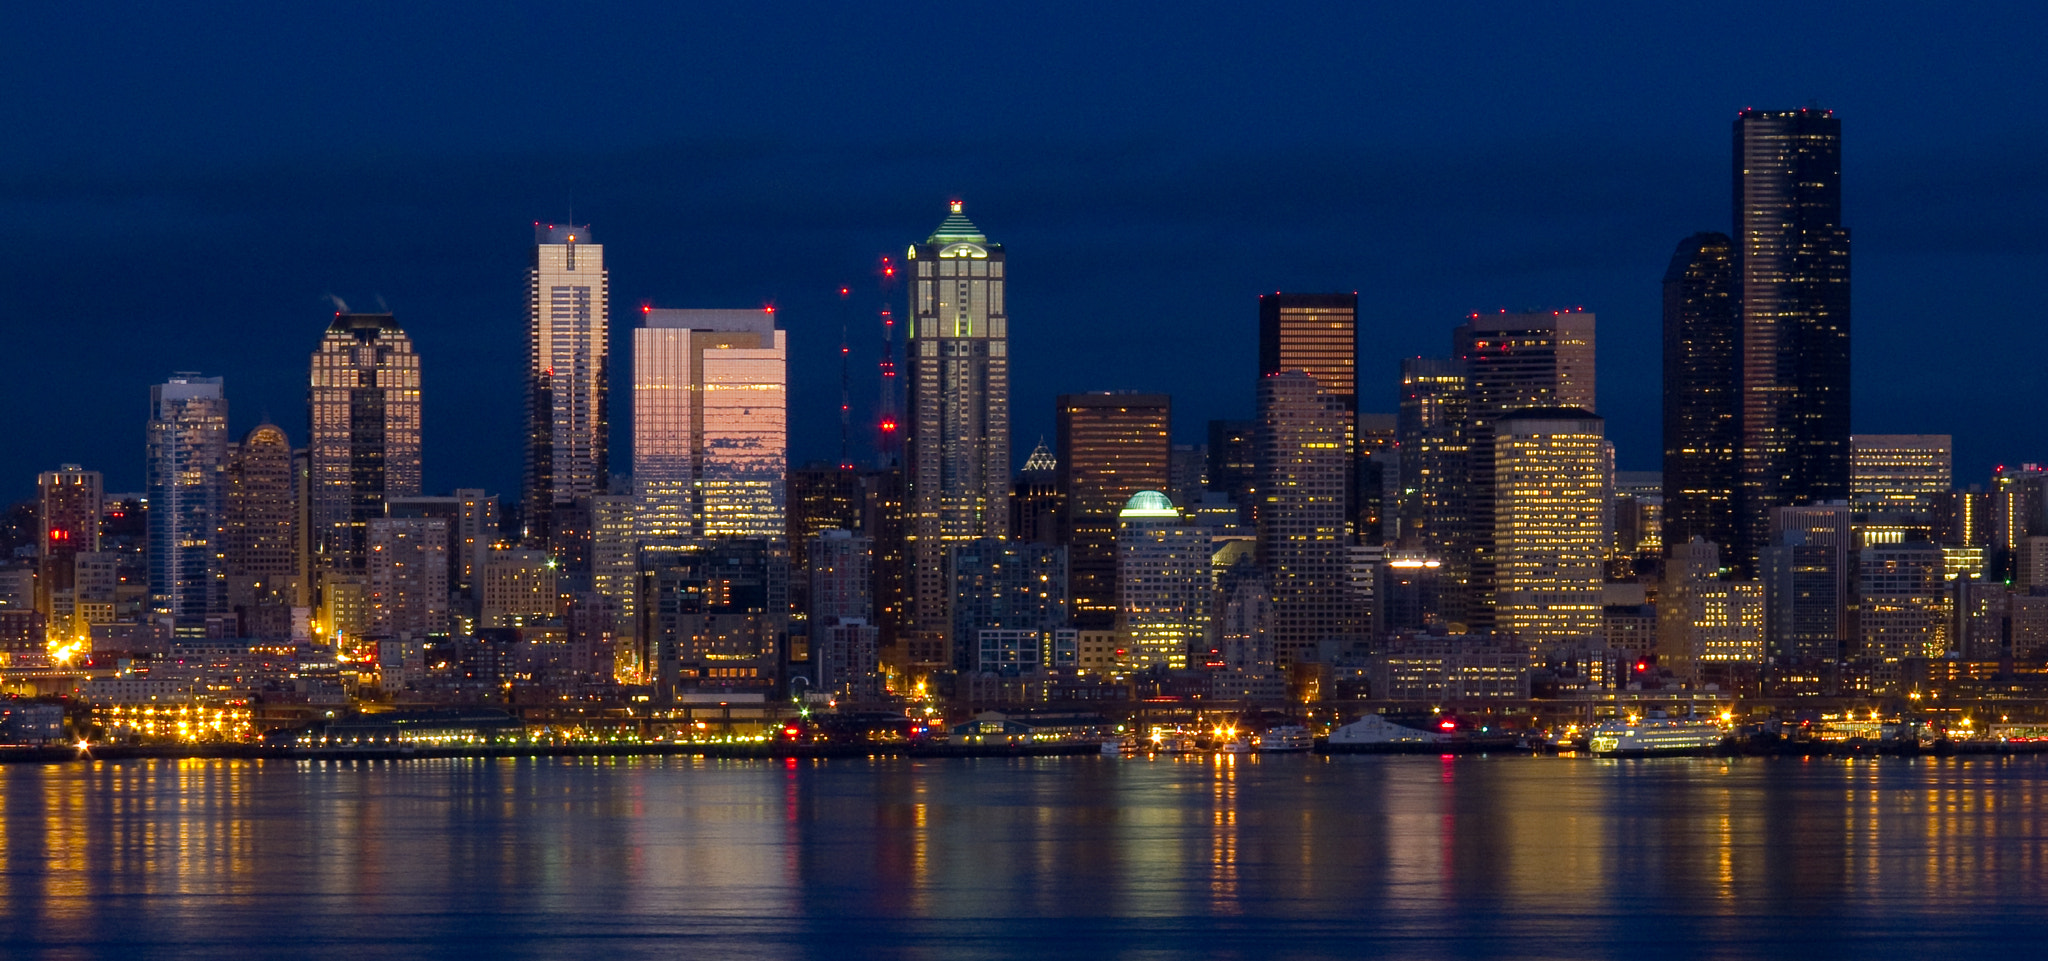 Photograph Seattle Skyline at Dusk by Jeff Carlson on 500px